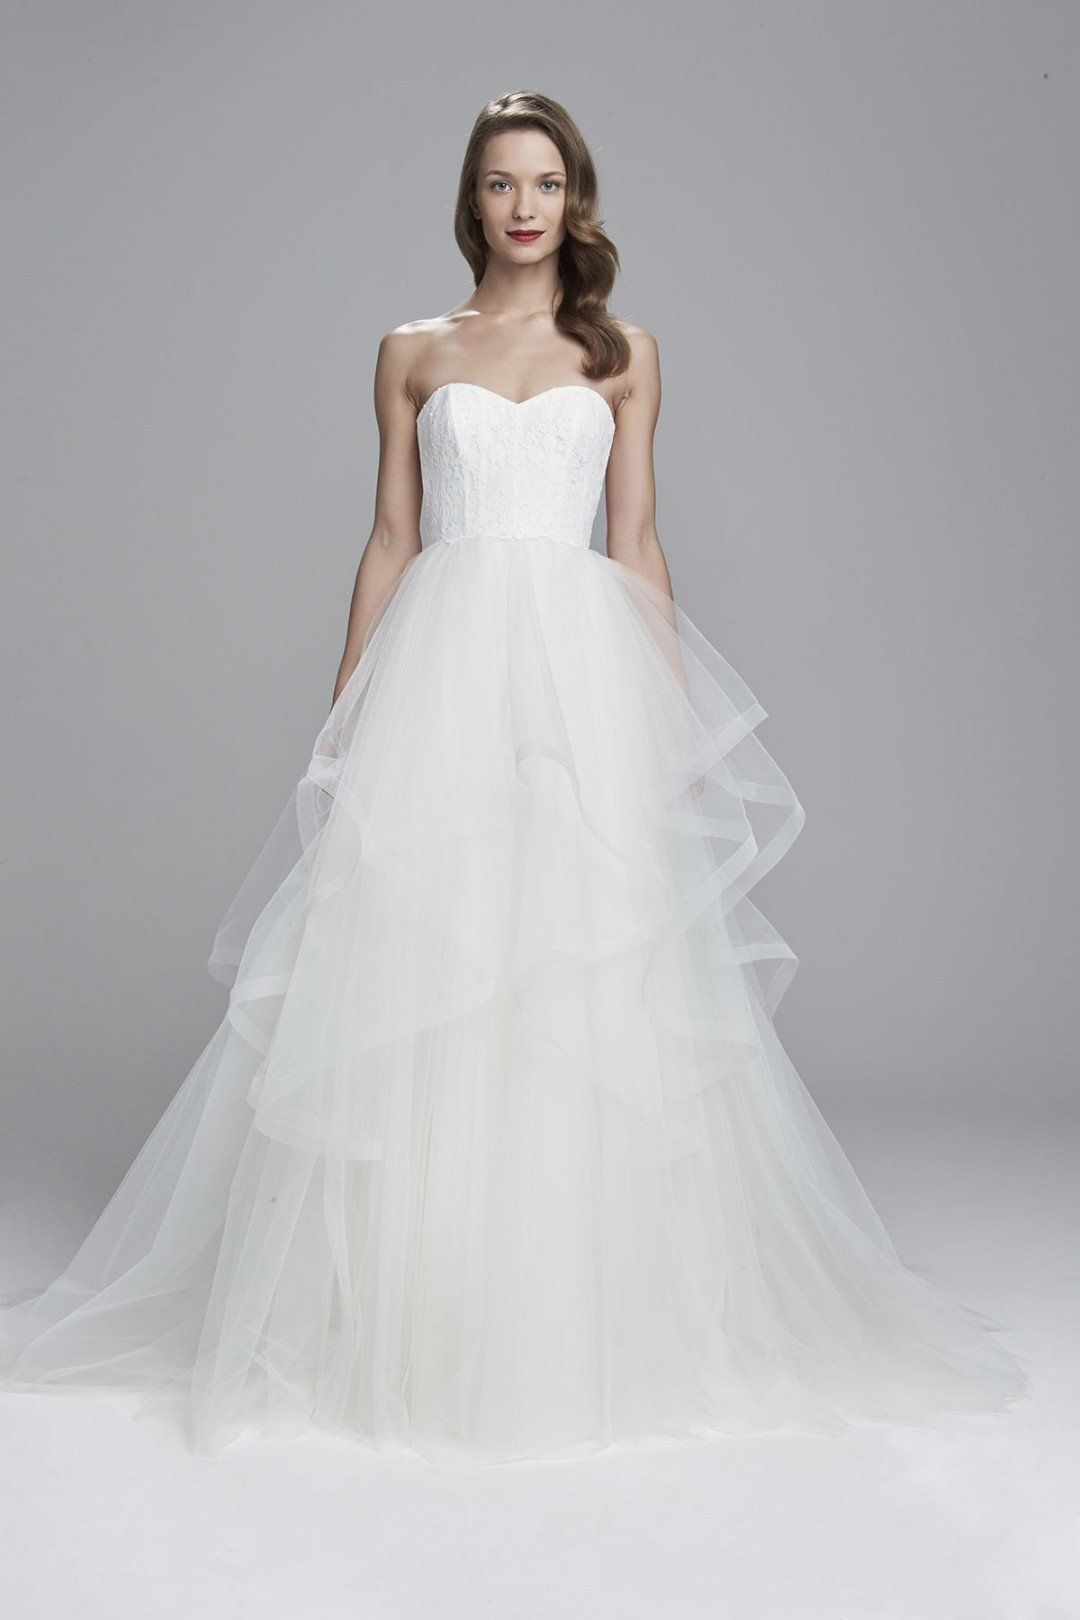 Strapless ball gown wedding dresses  Inspired by the Amsale Auden  Strapless ball gown with layered